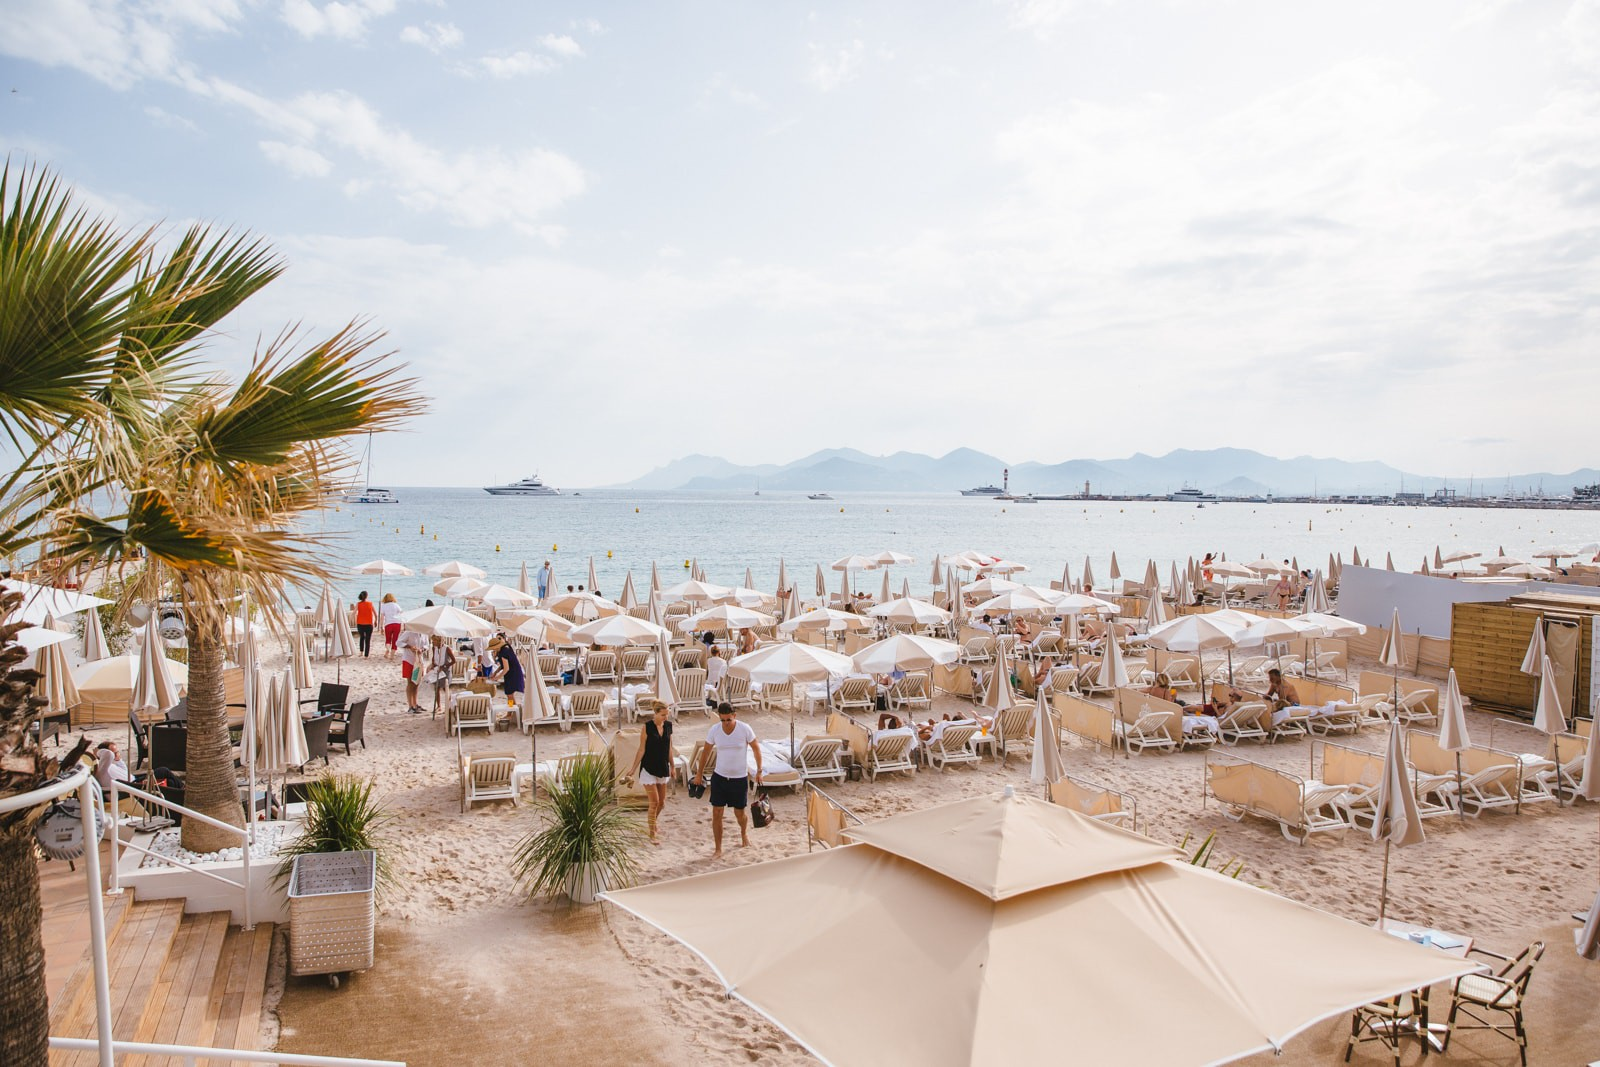 Carlton Intercontinental Hotel Beach, Cannes, France